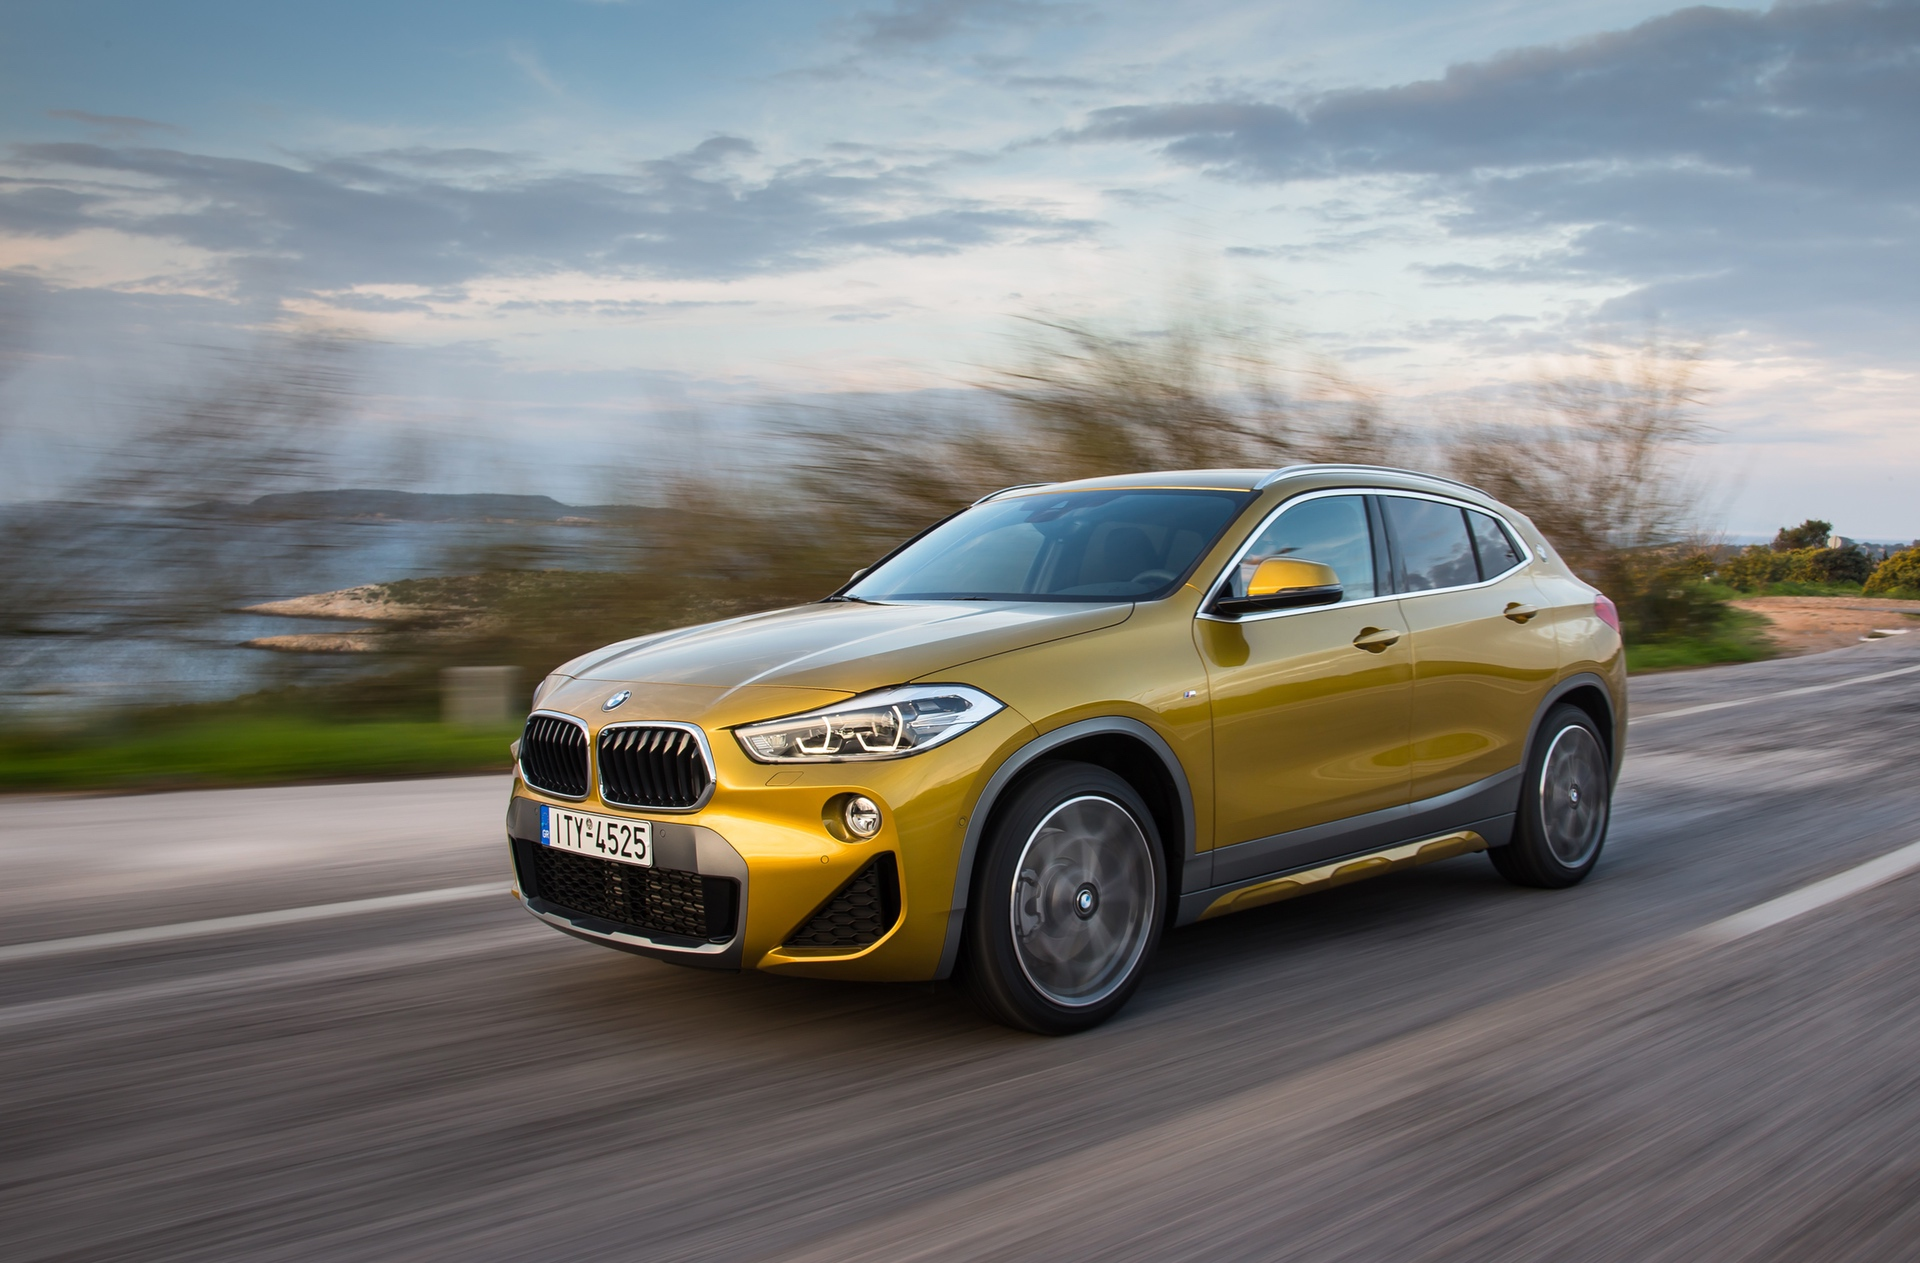 BMW_X2_Greek_presskit_0110